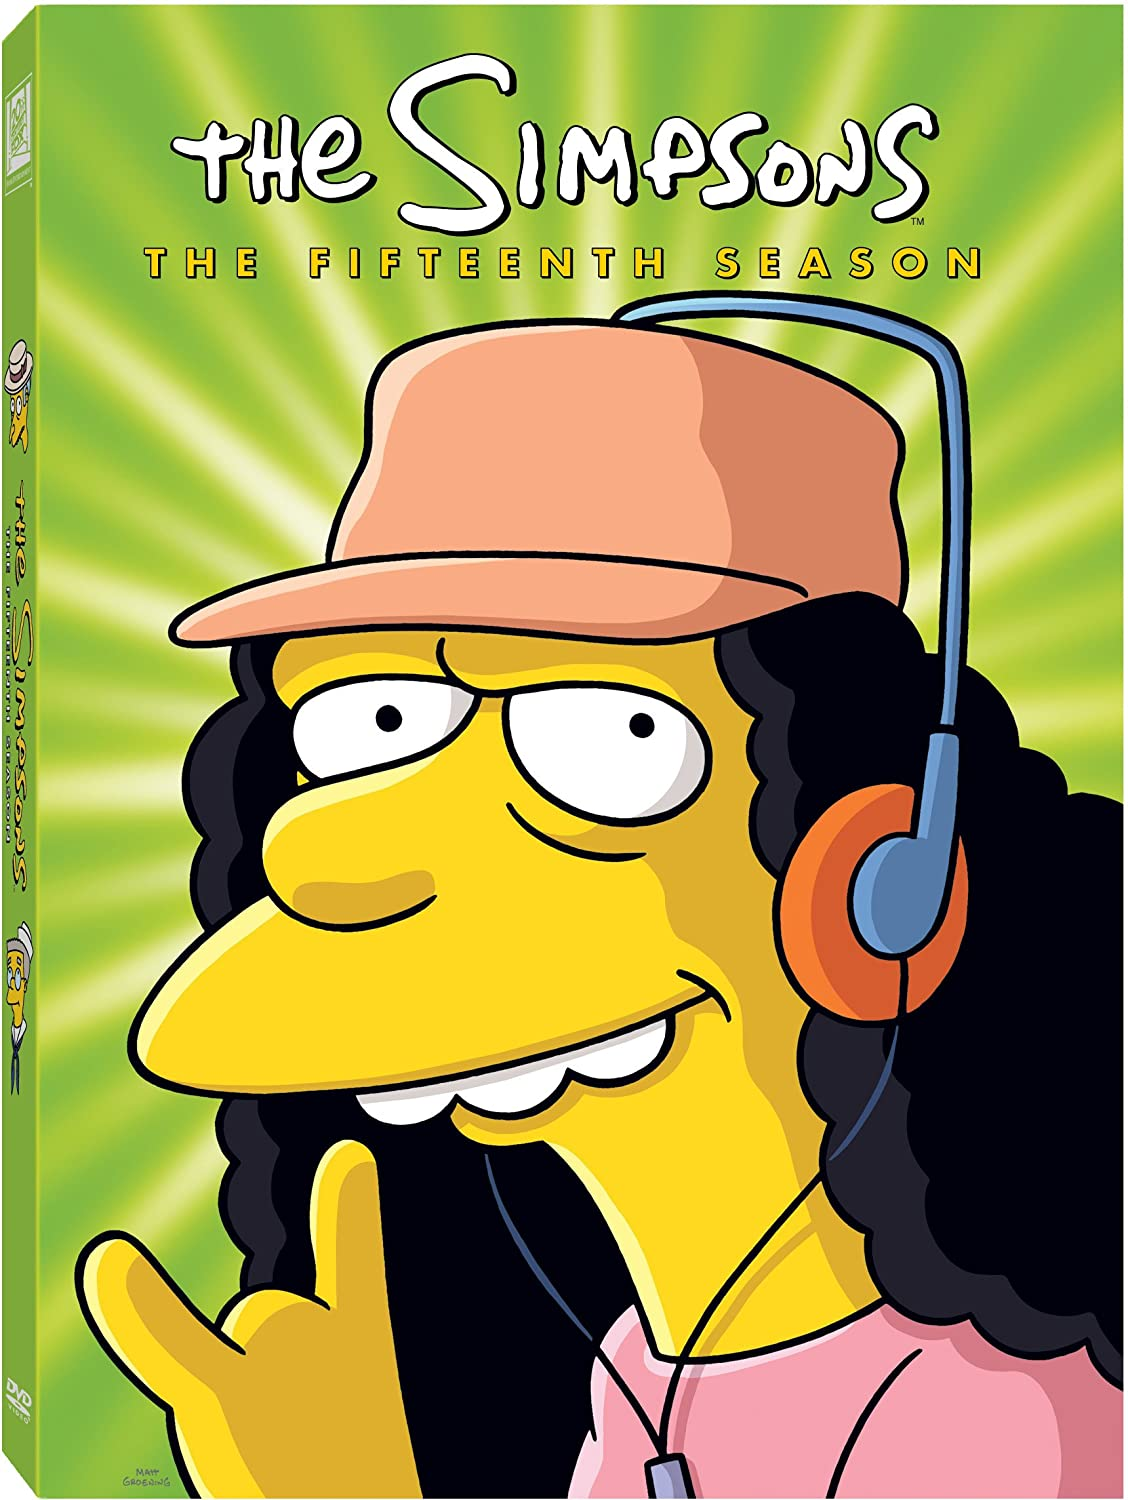 The Simpsons: The Fifteenth Season $16.99